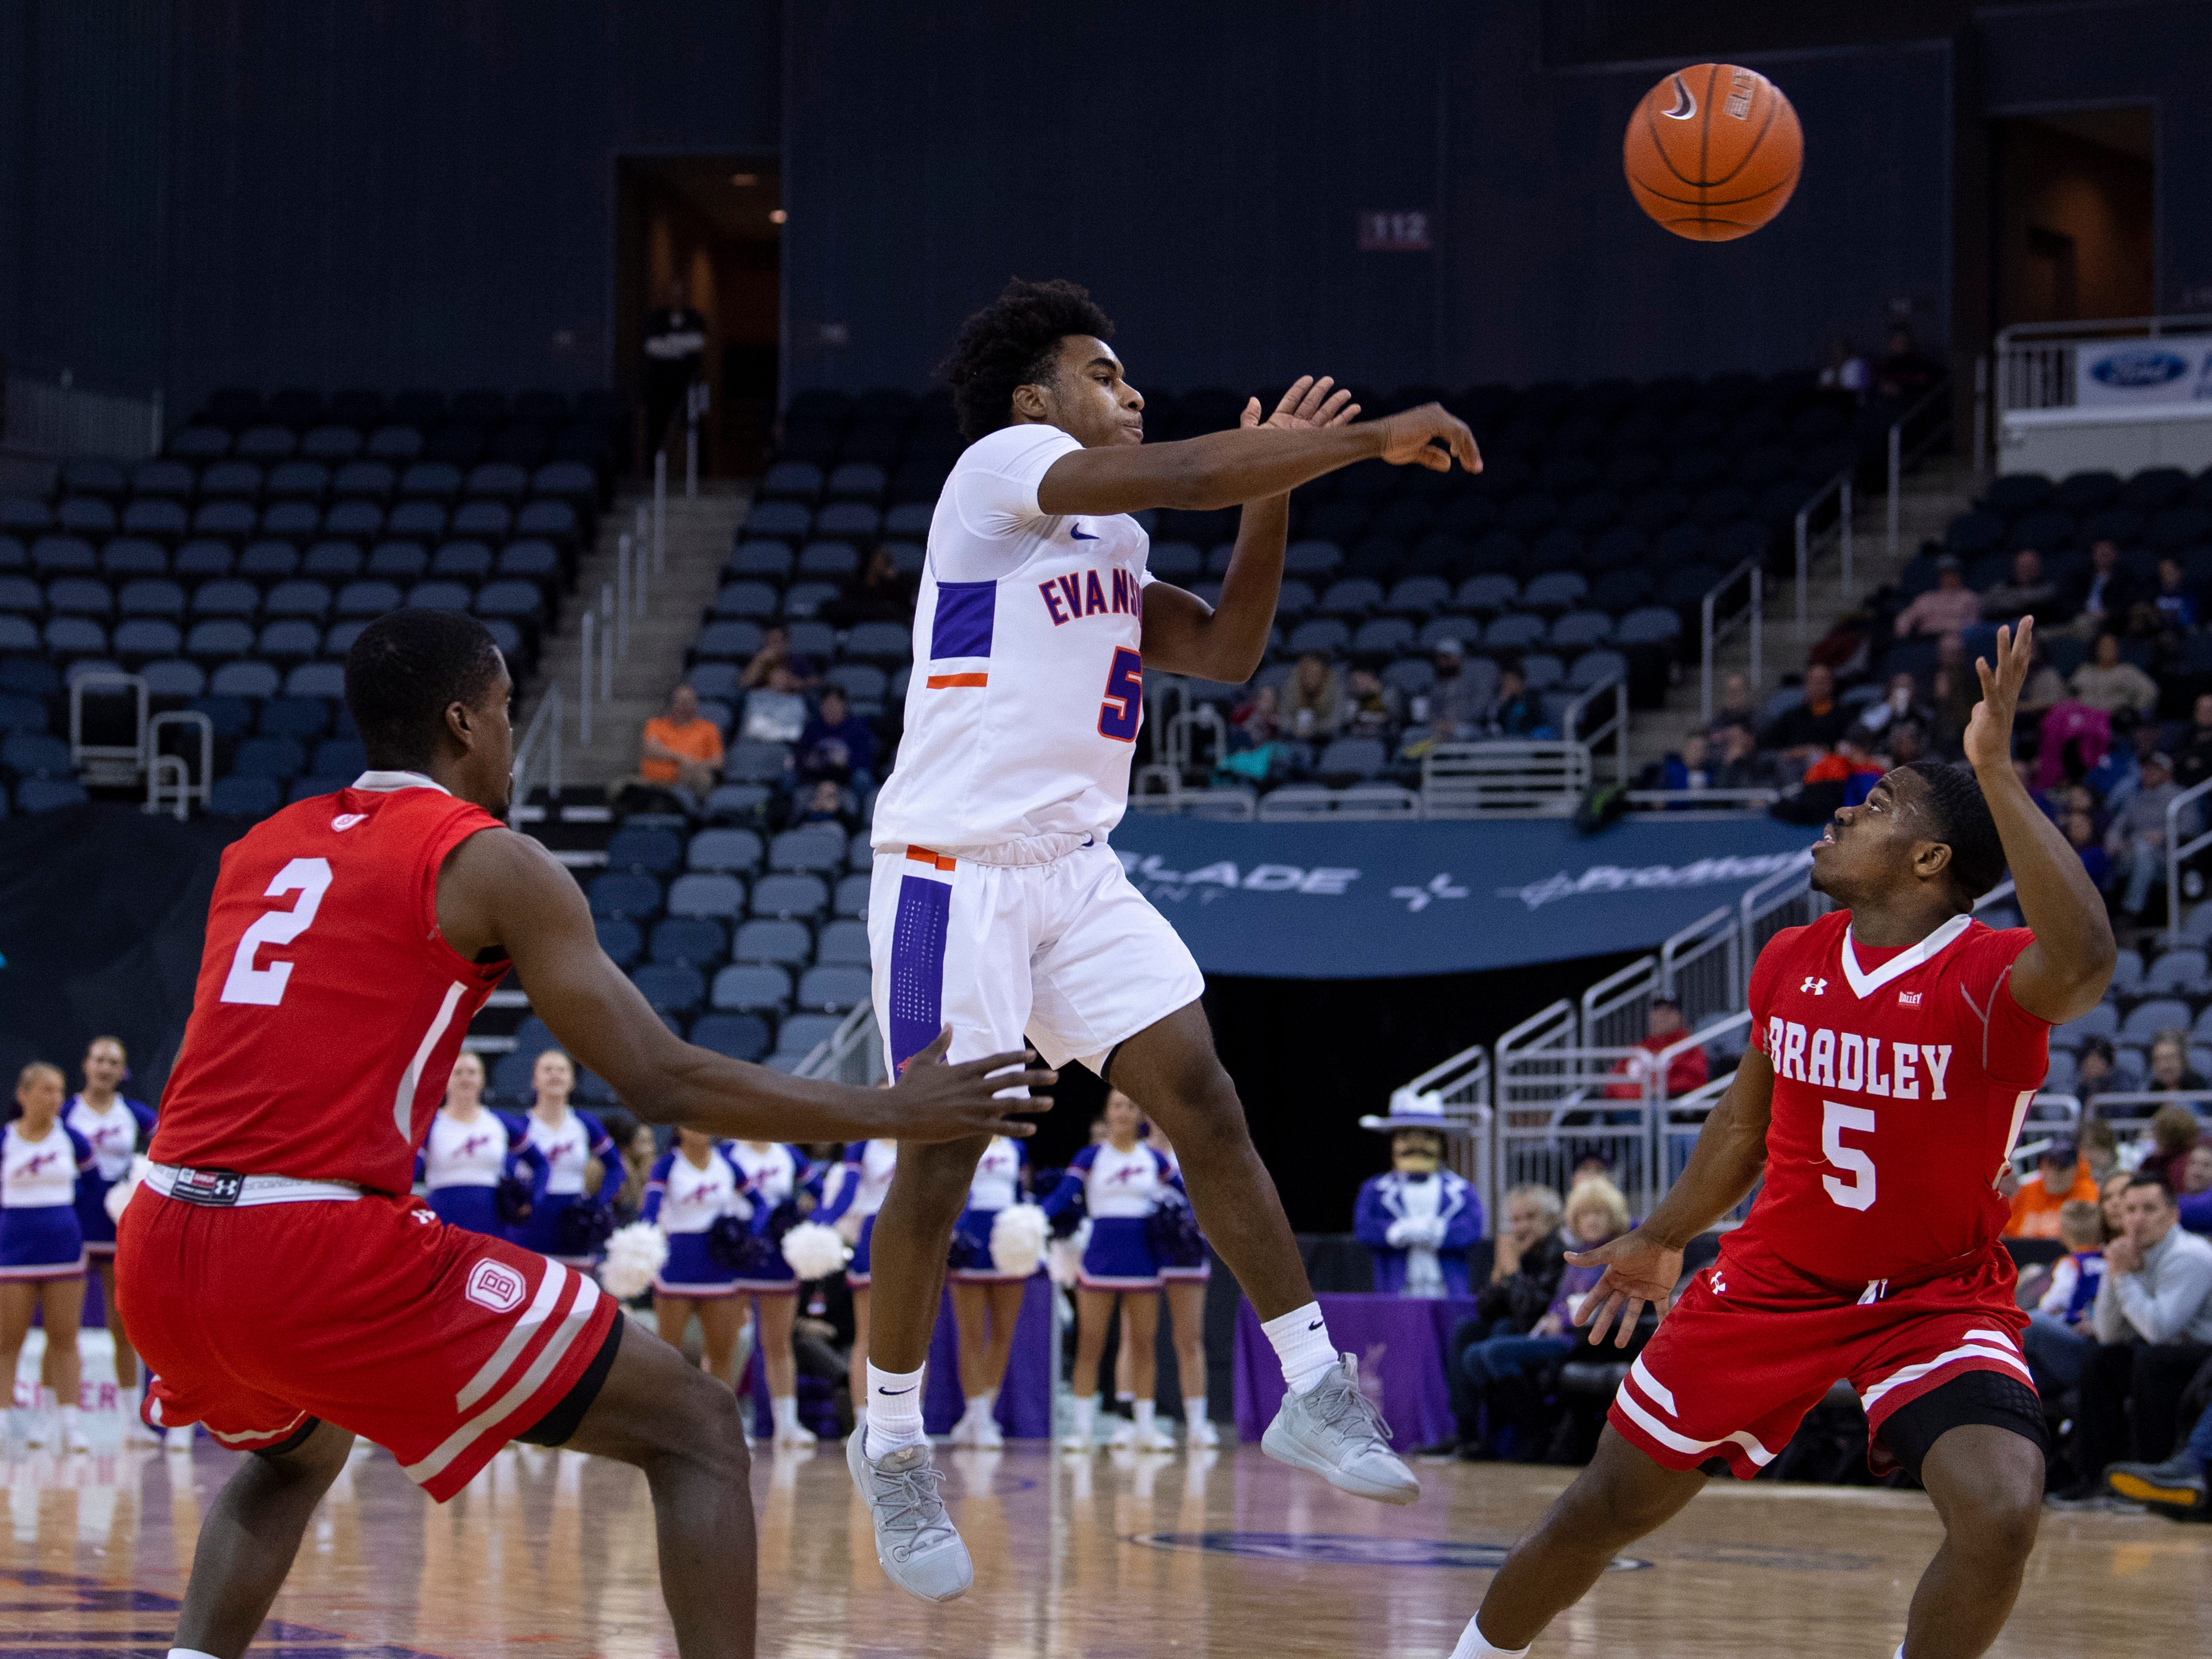 Evansville's Shamar Givance (5) makes a pass over Bradley's Darrell Brown (5) during their game at the Ford Center Wednesday night.